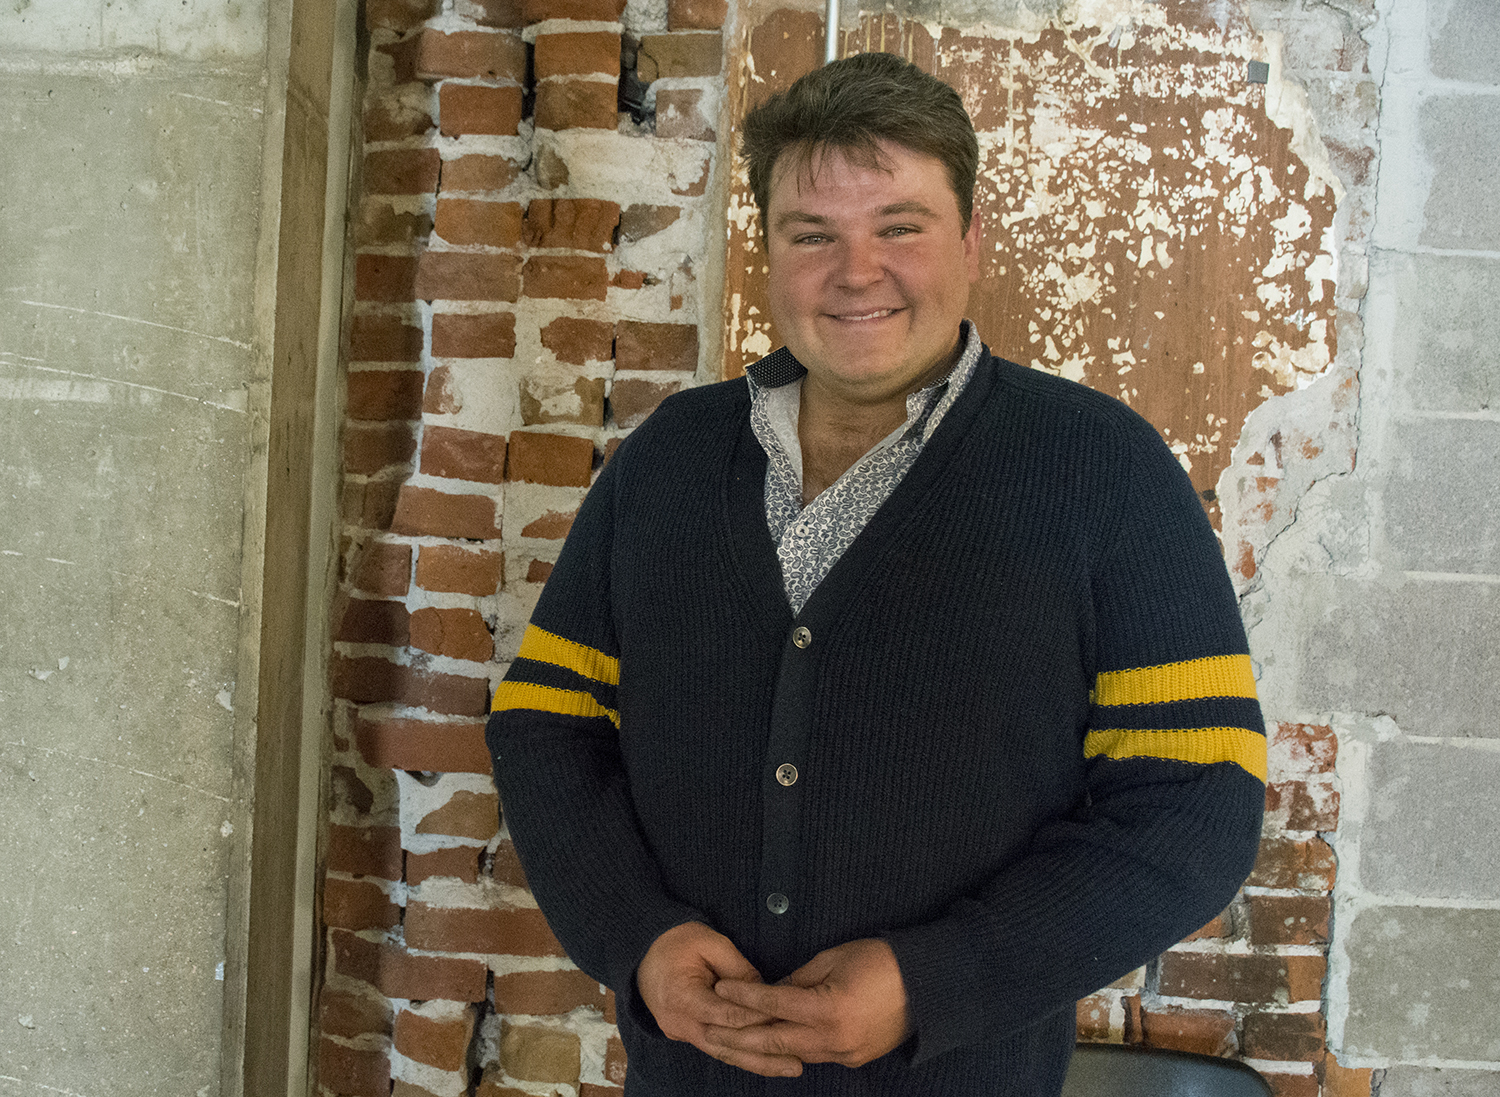 while male standing in front of a brick wall with his hands folded smiling